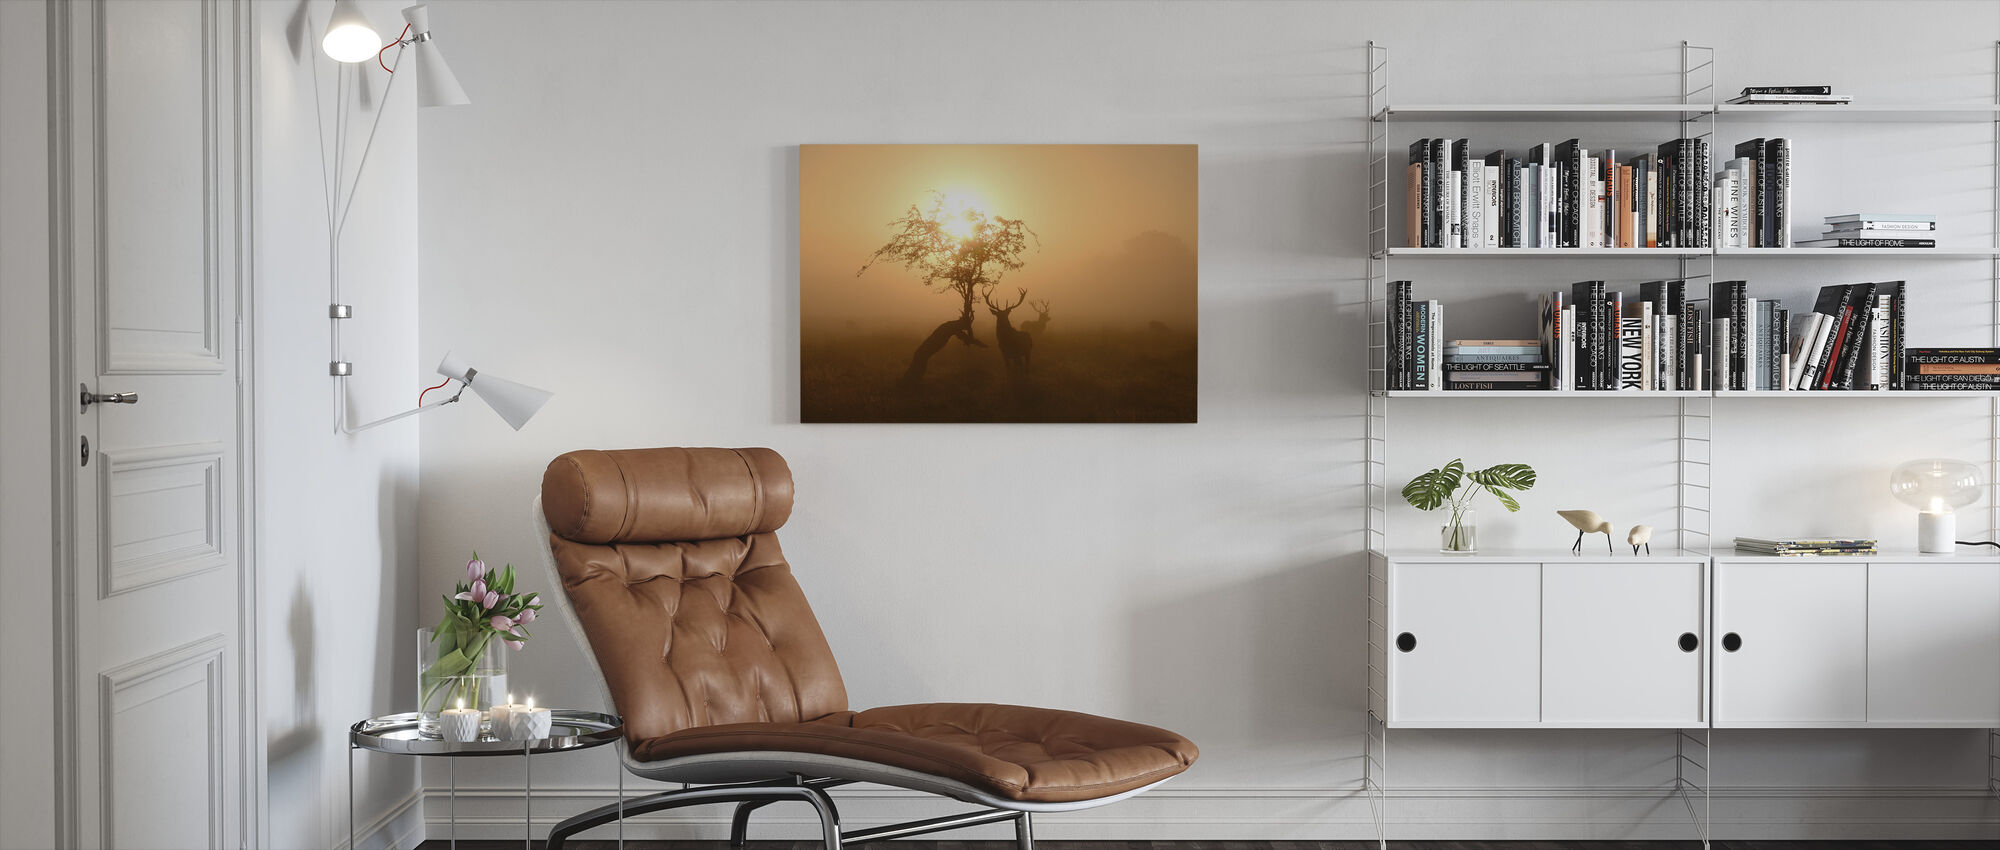 Sun and Deers - Canvas print - Living Room